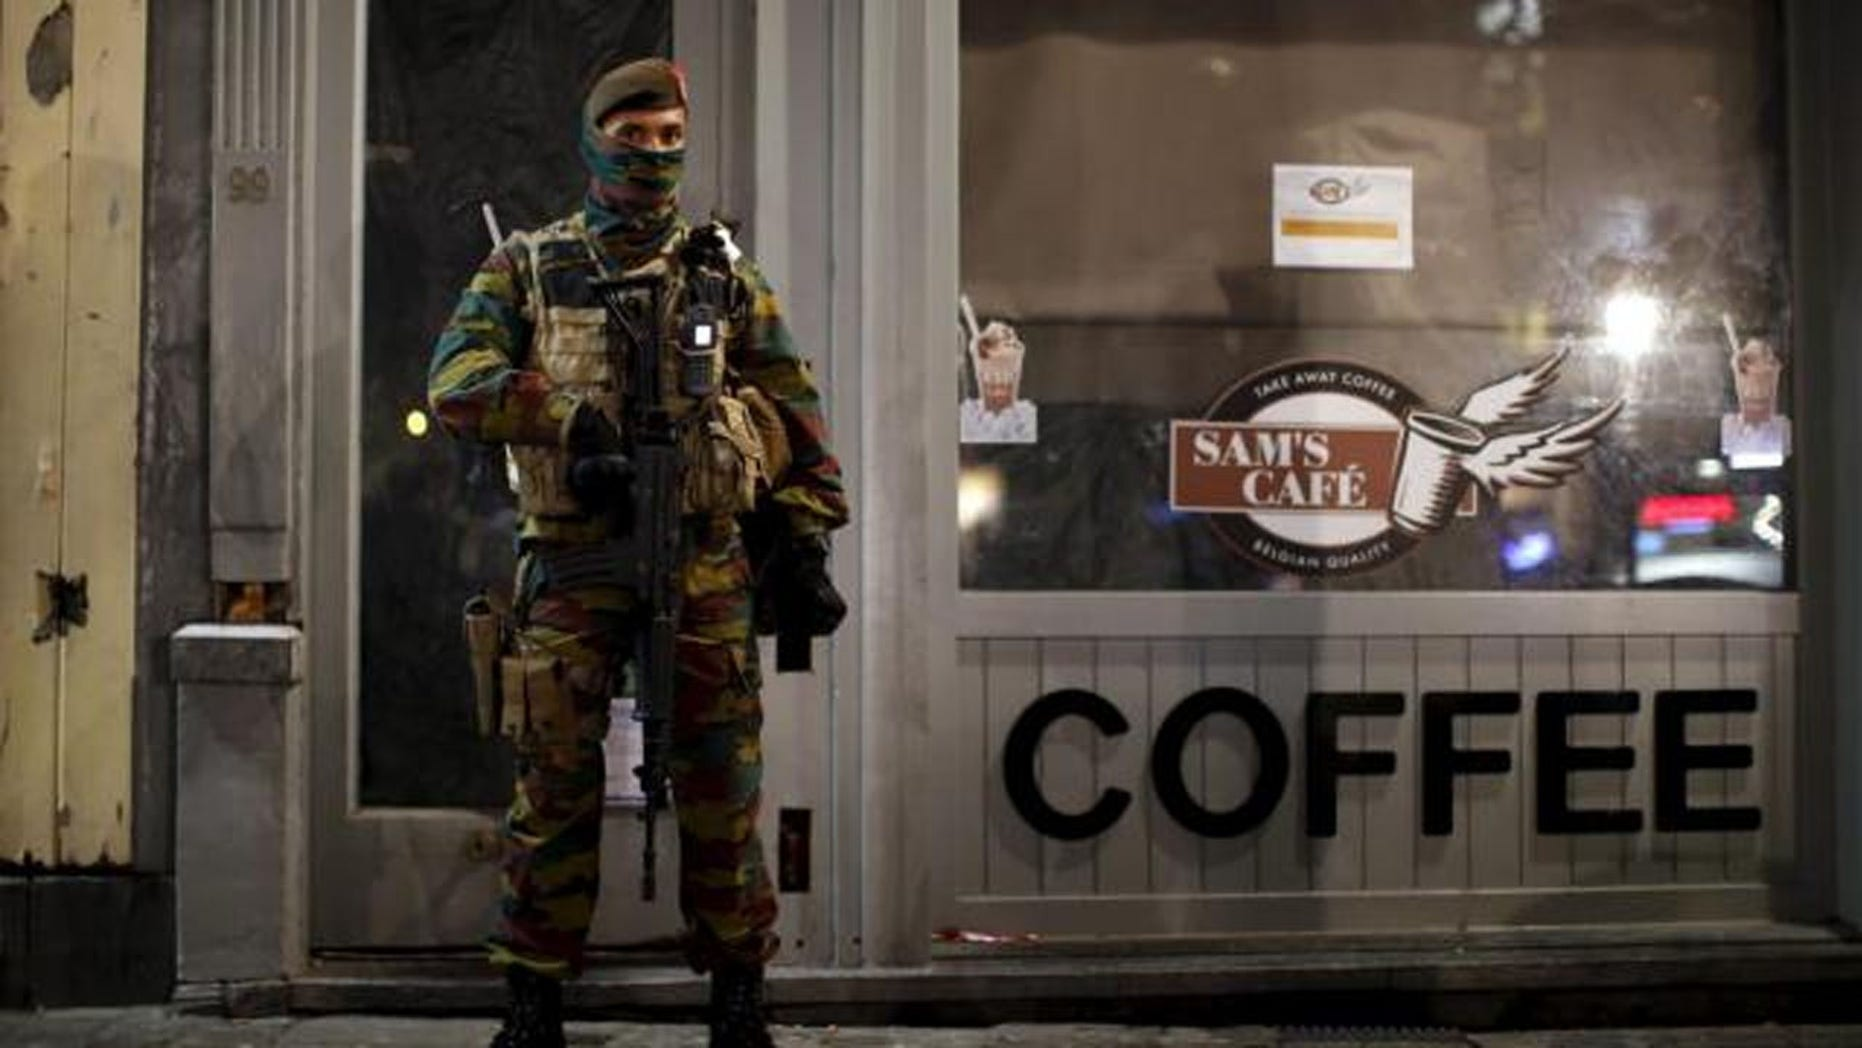 Belgian soldiers patrol in central Brussels as the city is on lockdown.